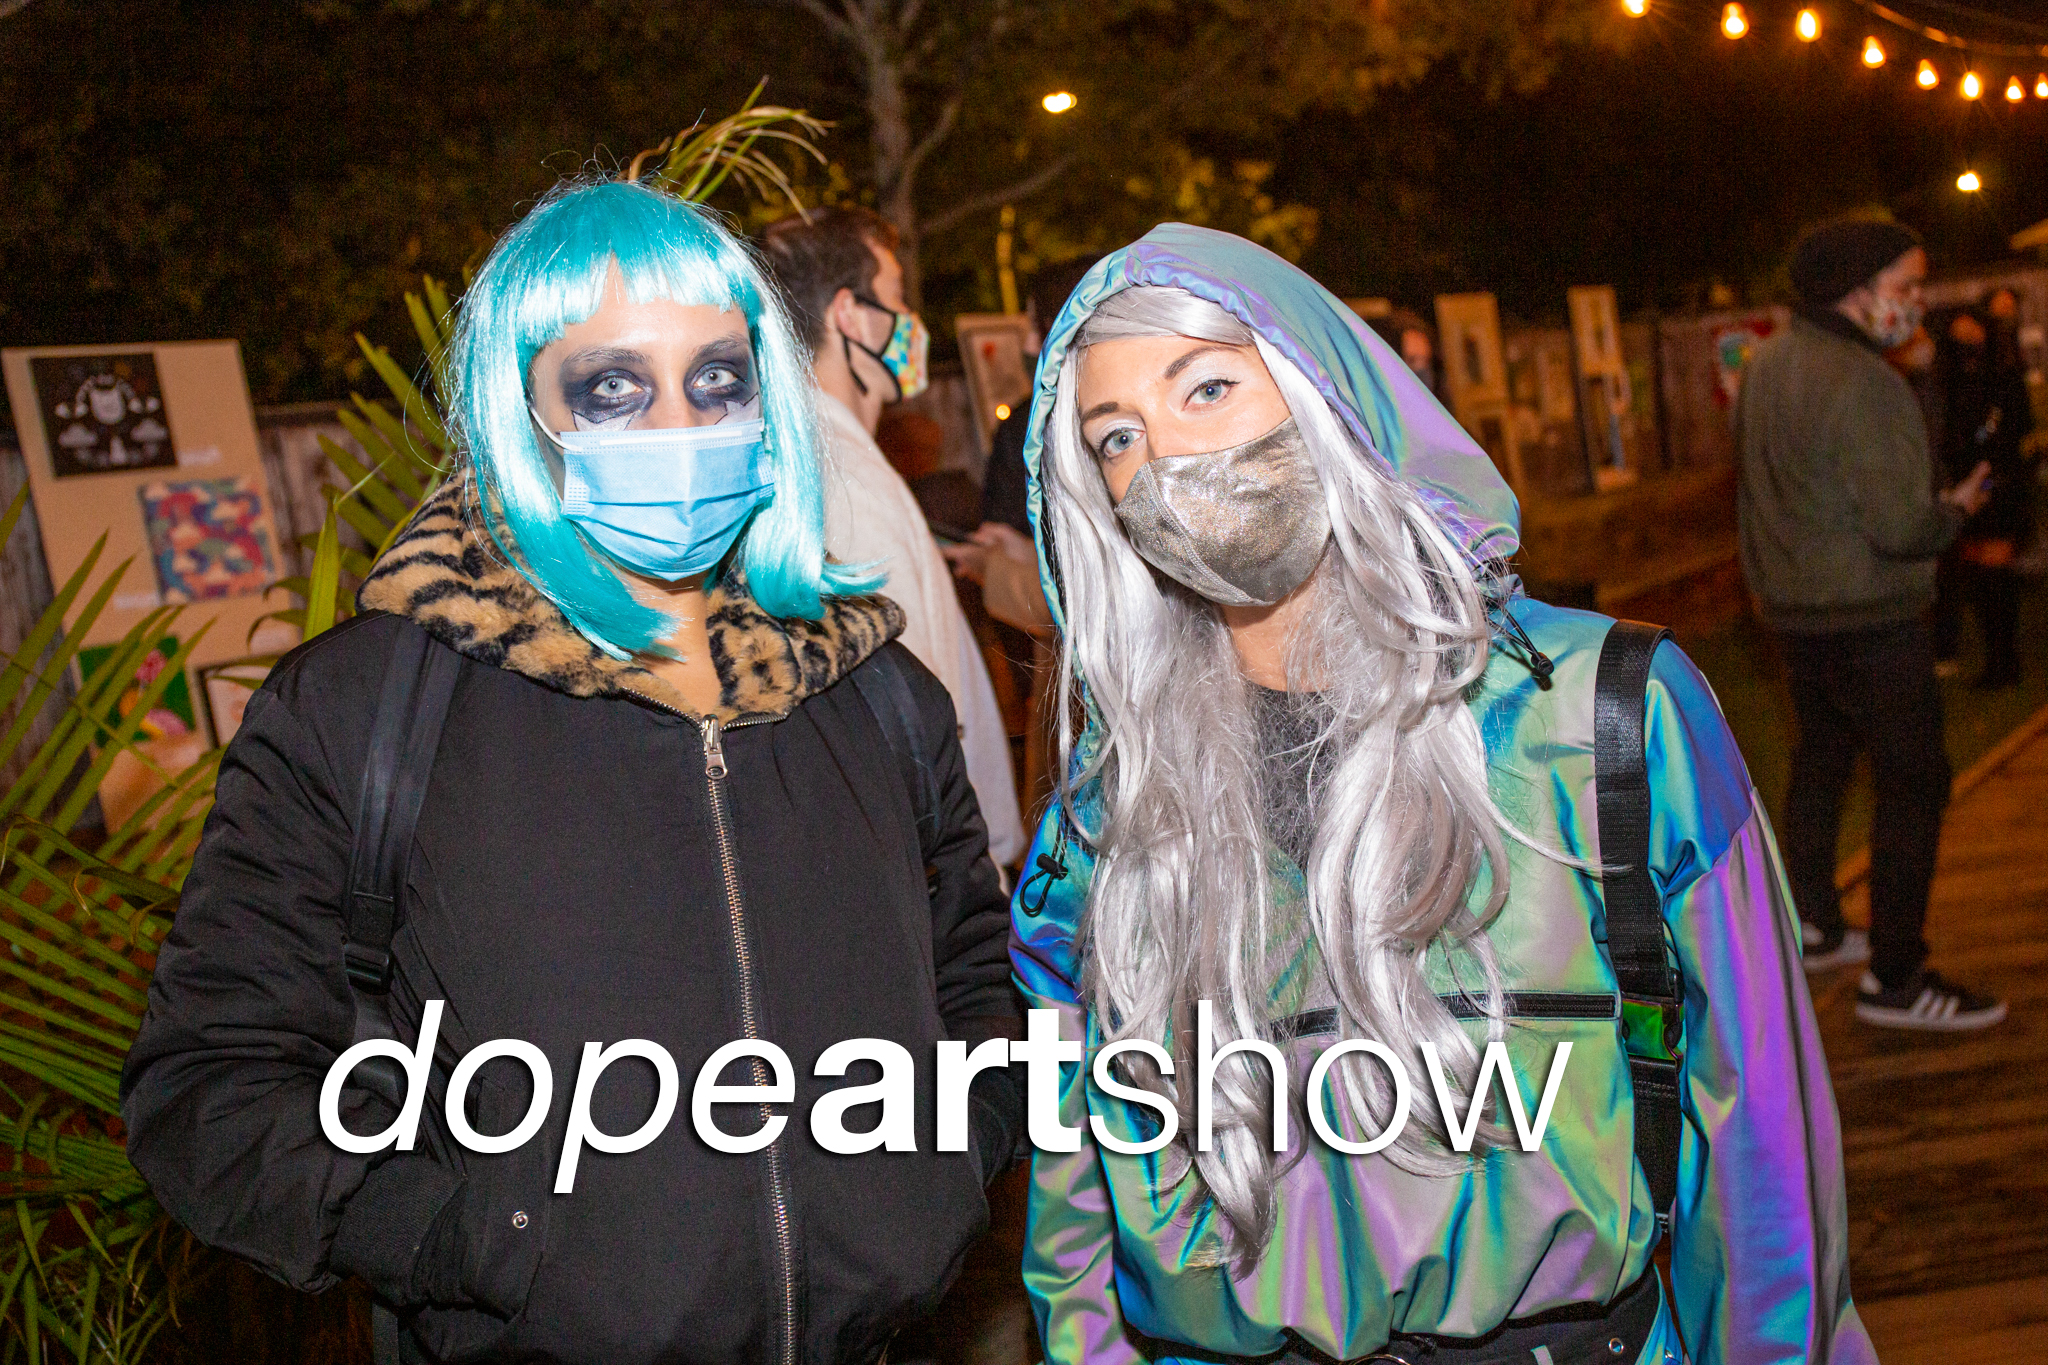 glitterguts event photos from a dope art show at ludlow liquors, chicago 2020